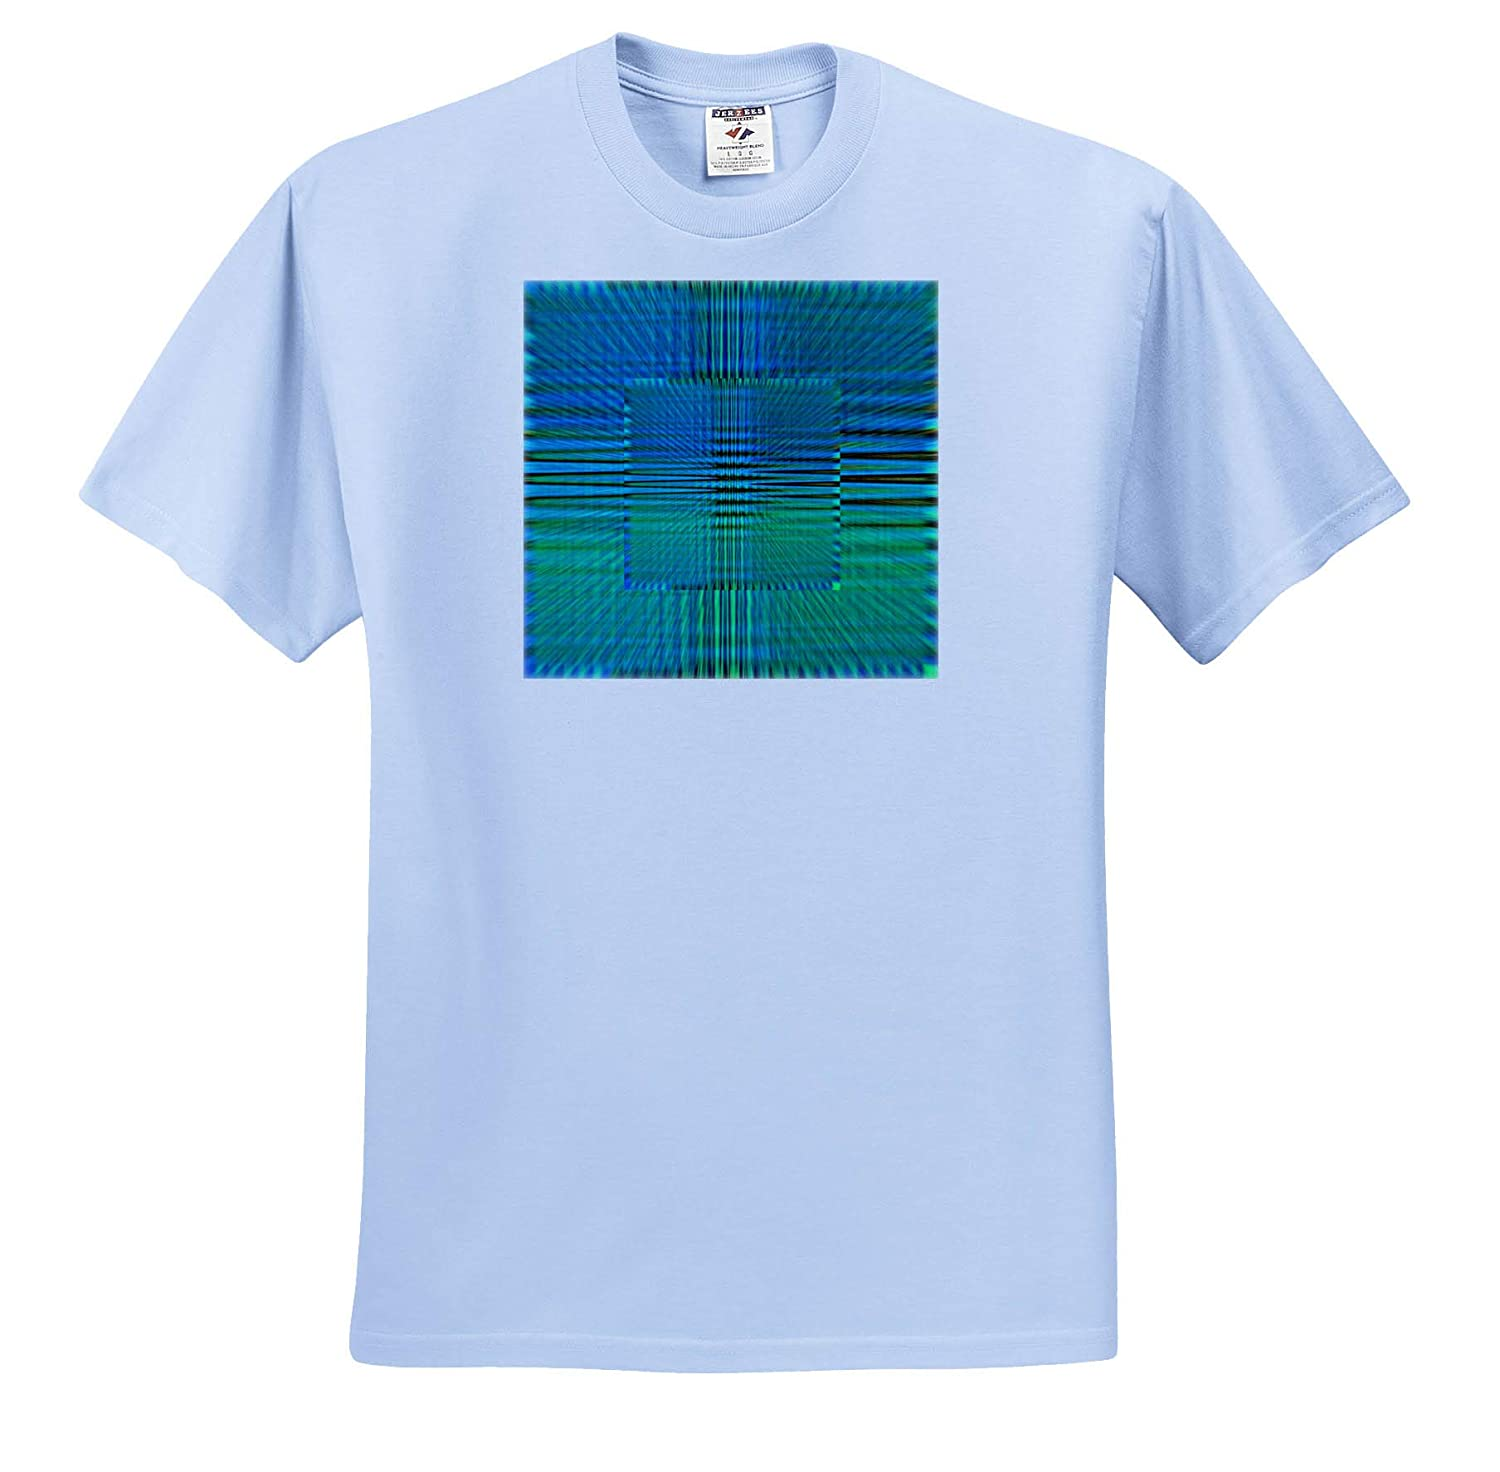 T-Shirts Three D Abstract Design 3dRose Lens Art by Florene Image of Blue Green Three D Lines in A Pattern